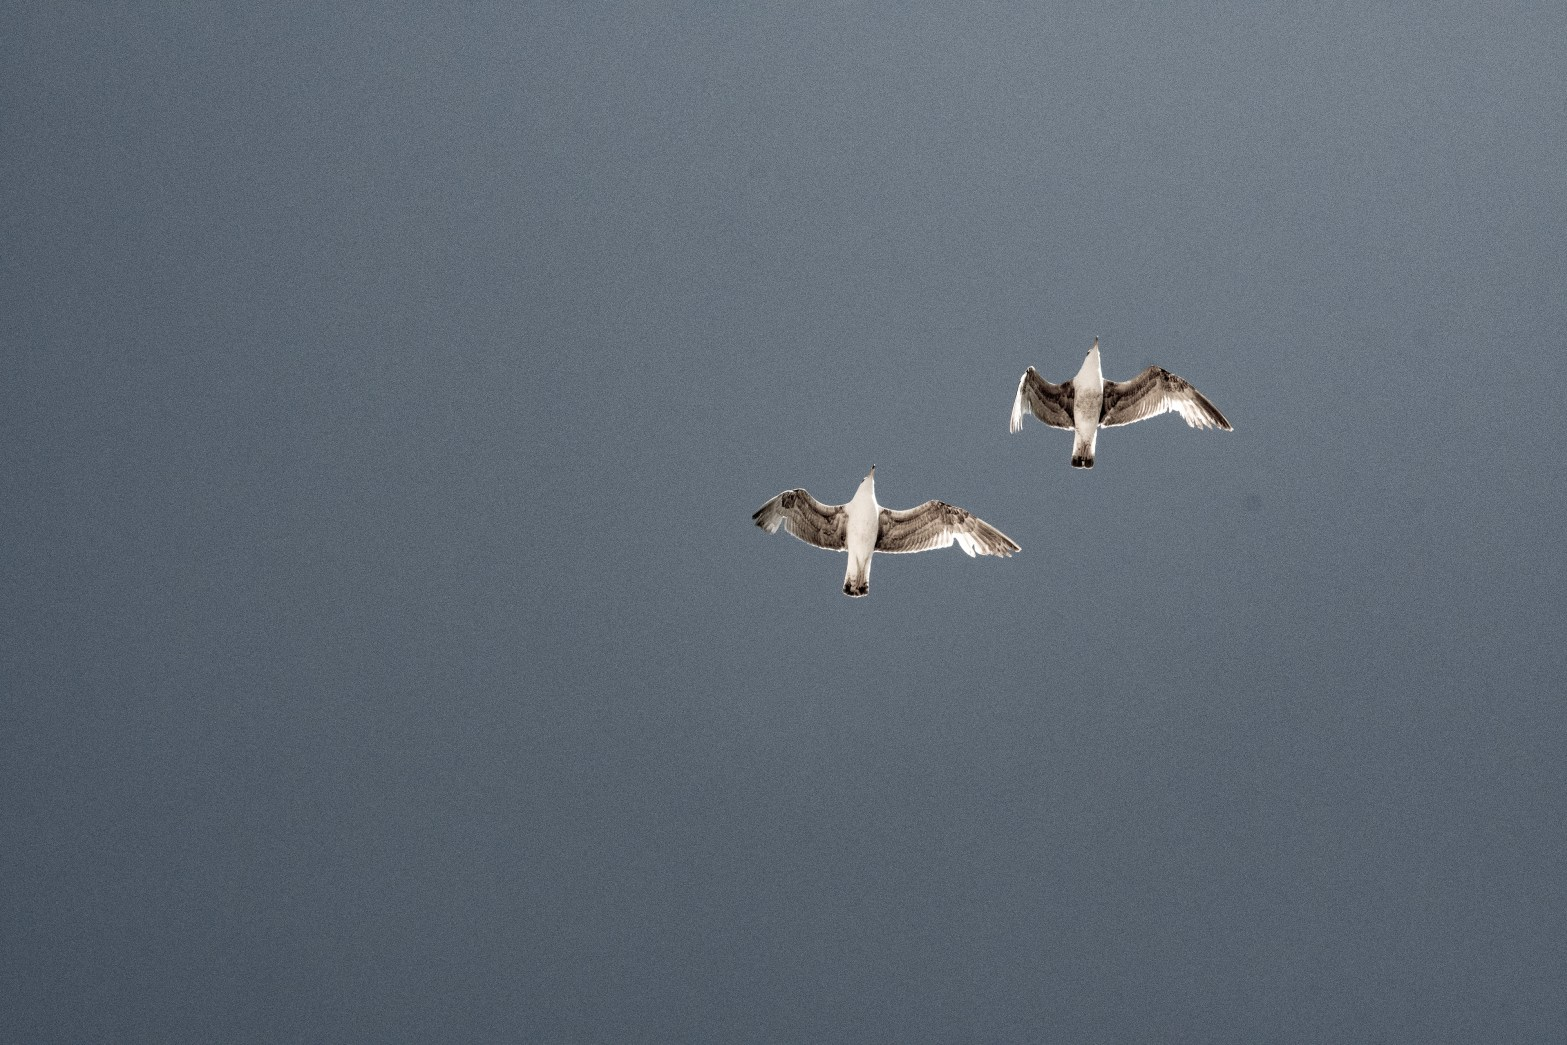 An picture of two seagulls with a grey sky in the background.